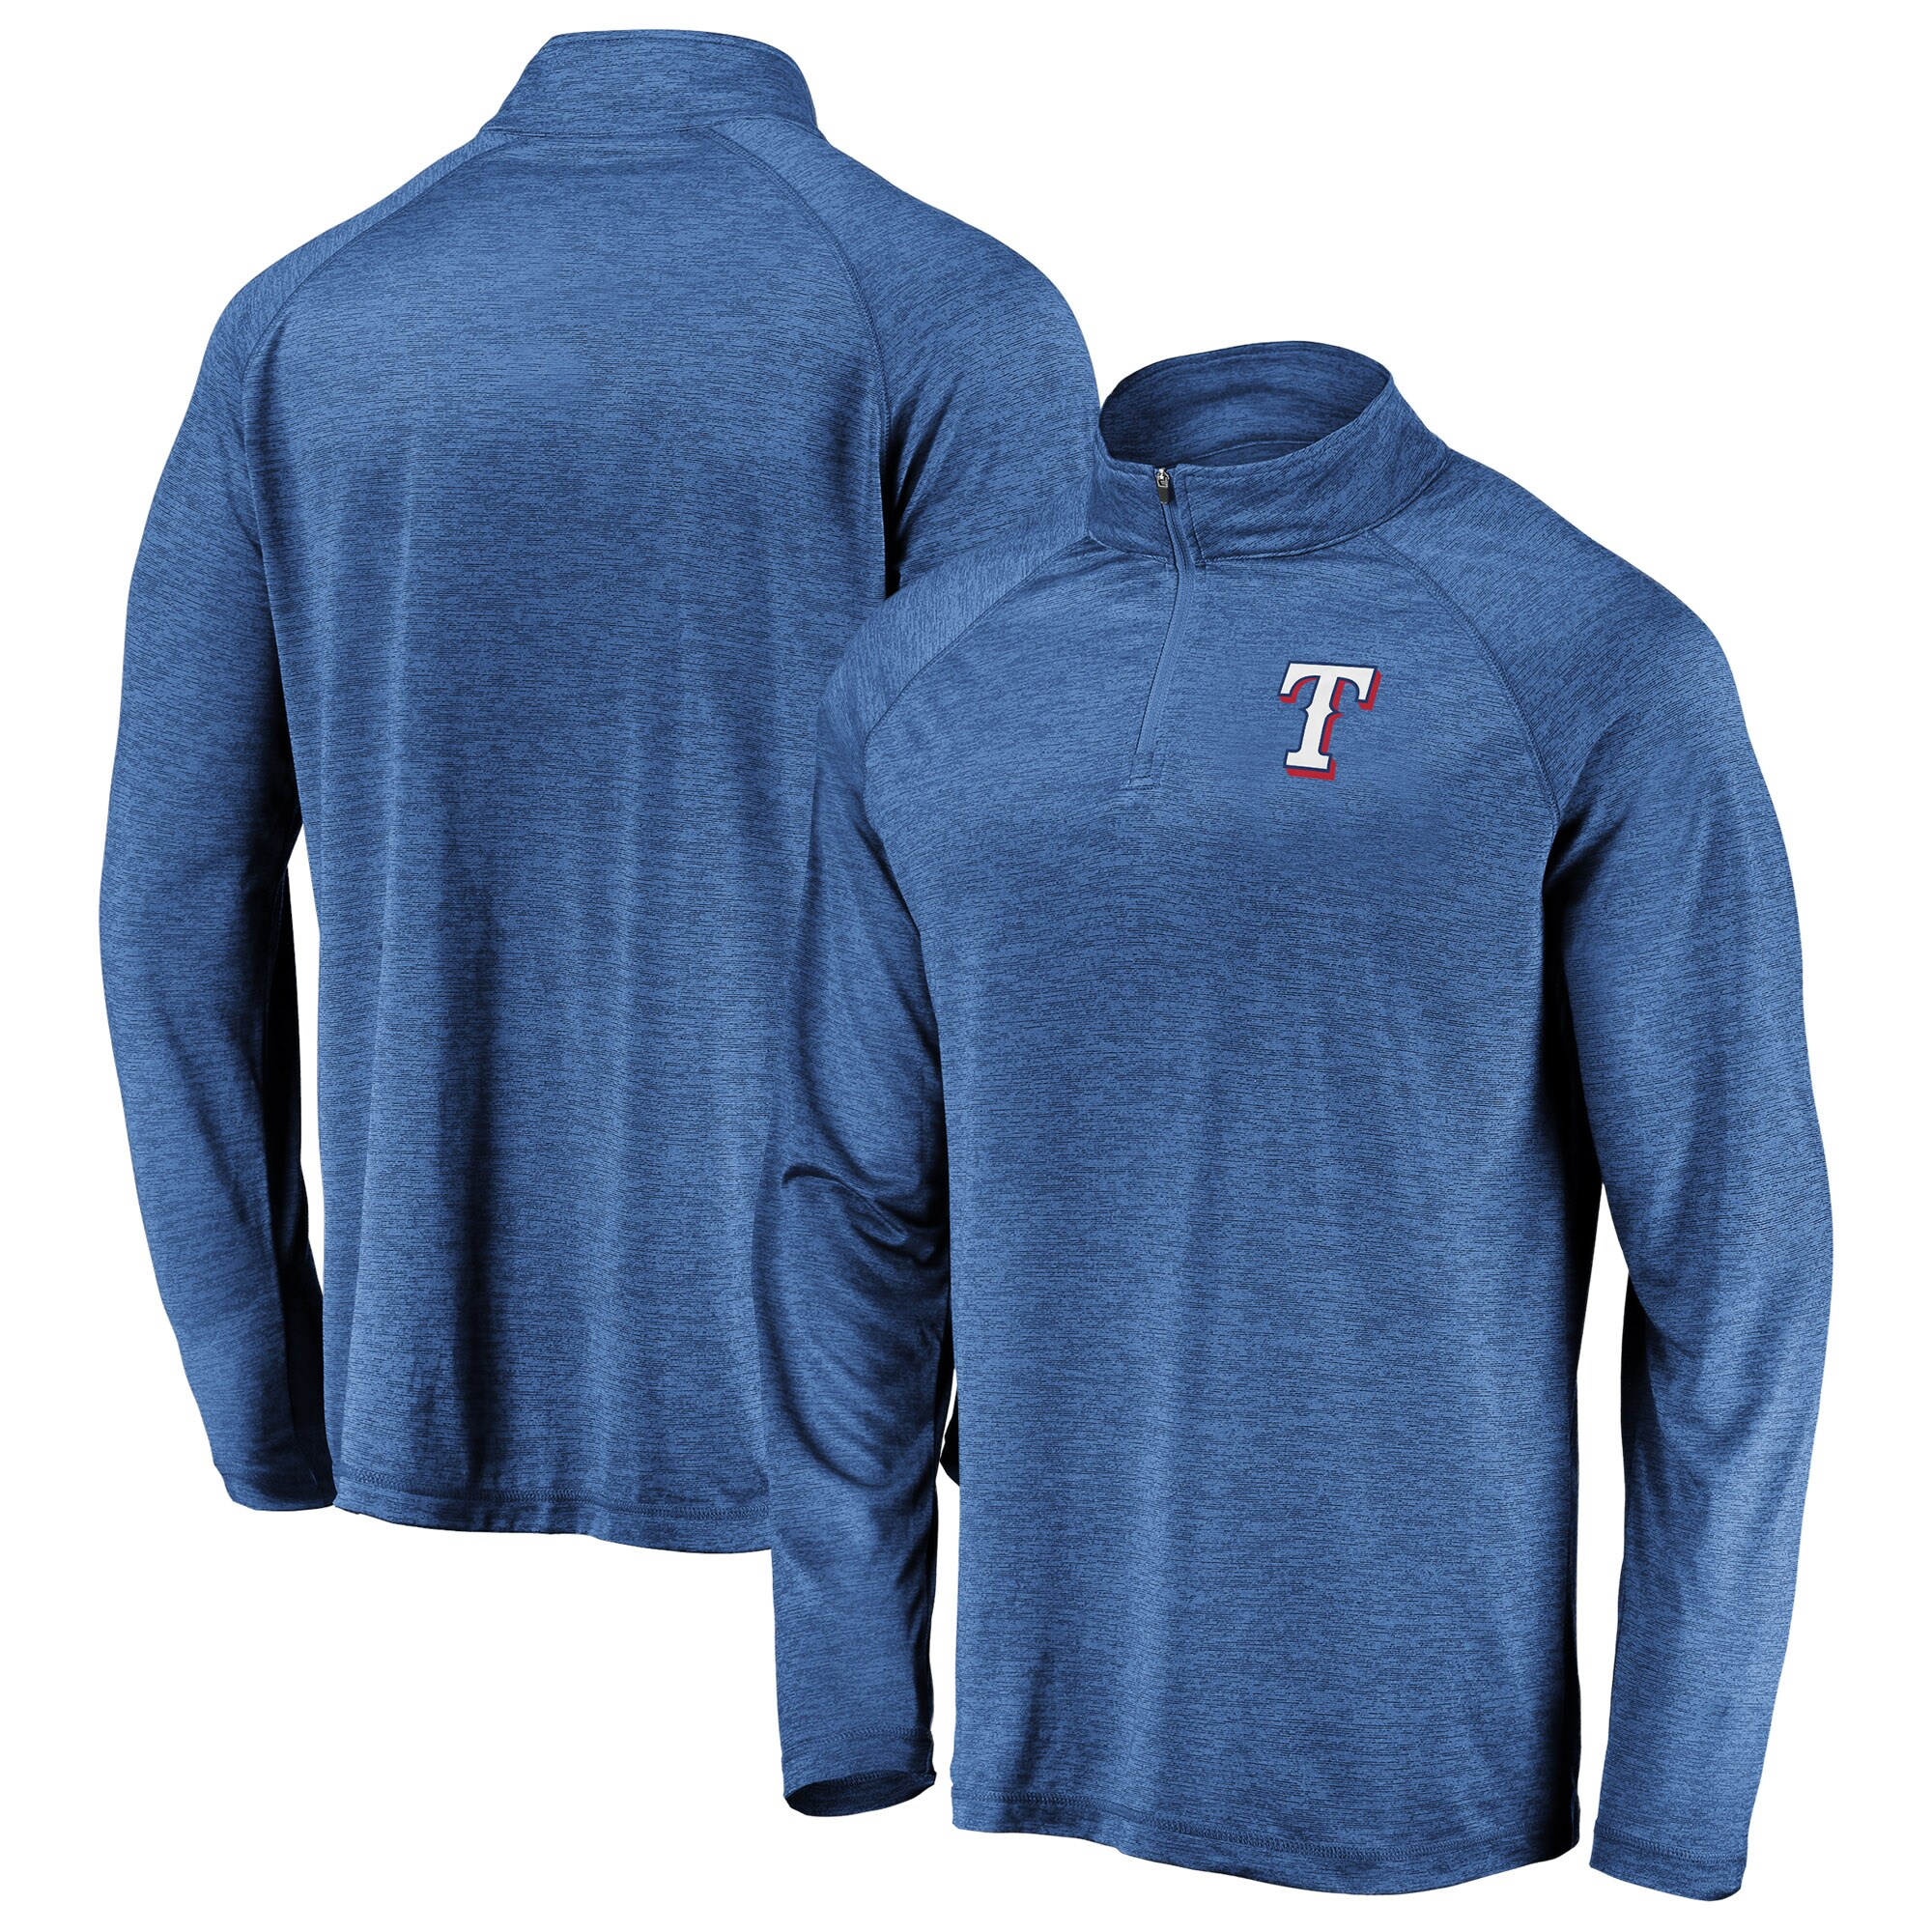 Texas Rangers Fanatics Branded Iconic Striated Primary Logo Raglan Quarter-Zip Pullover Jacket - Royal